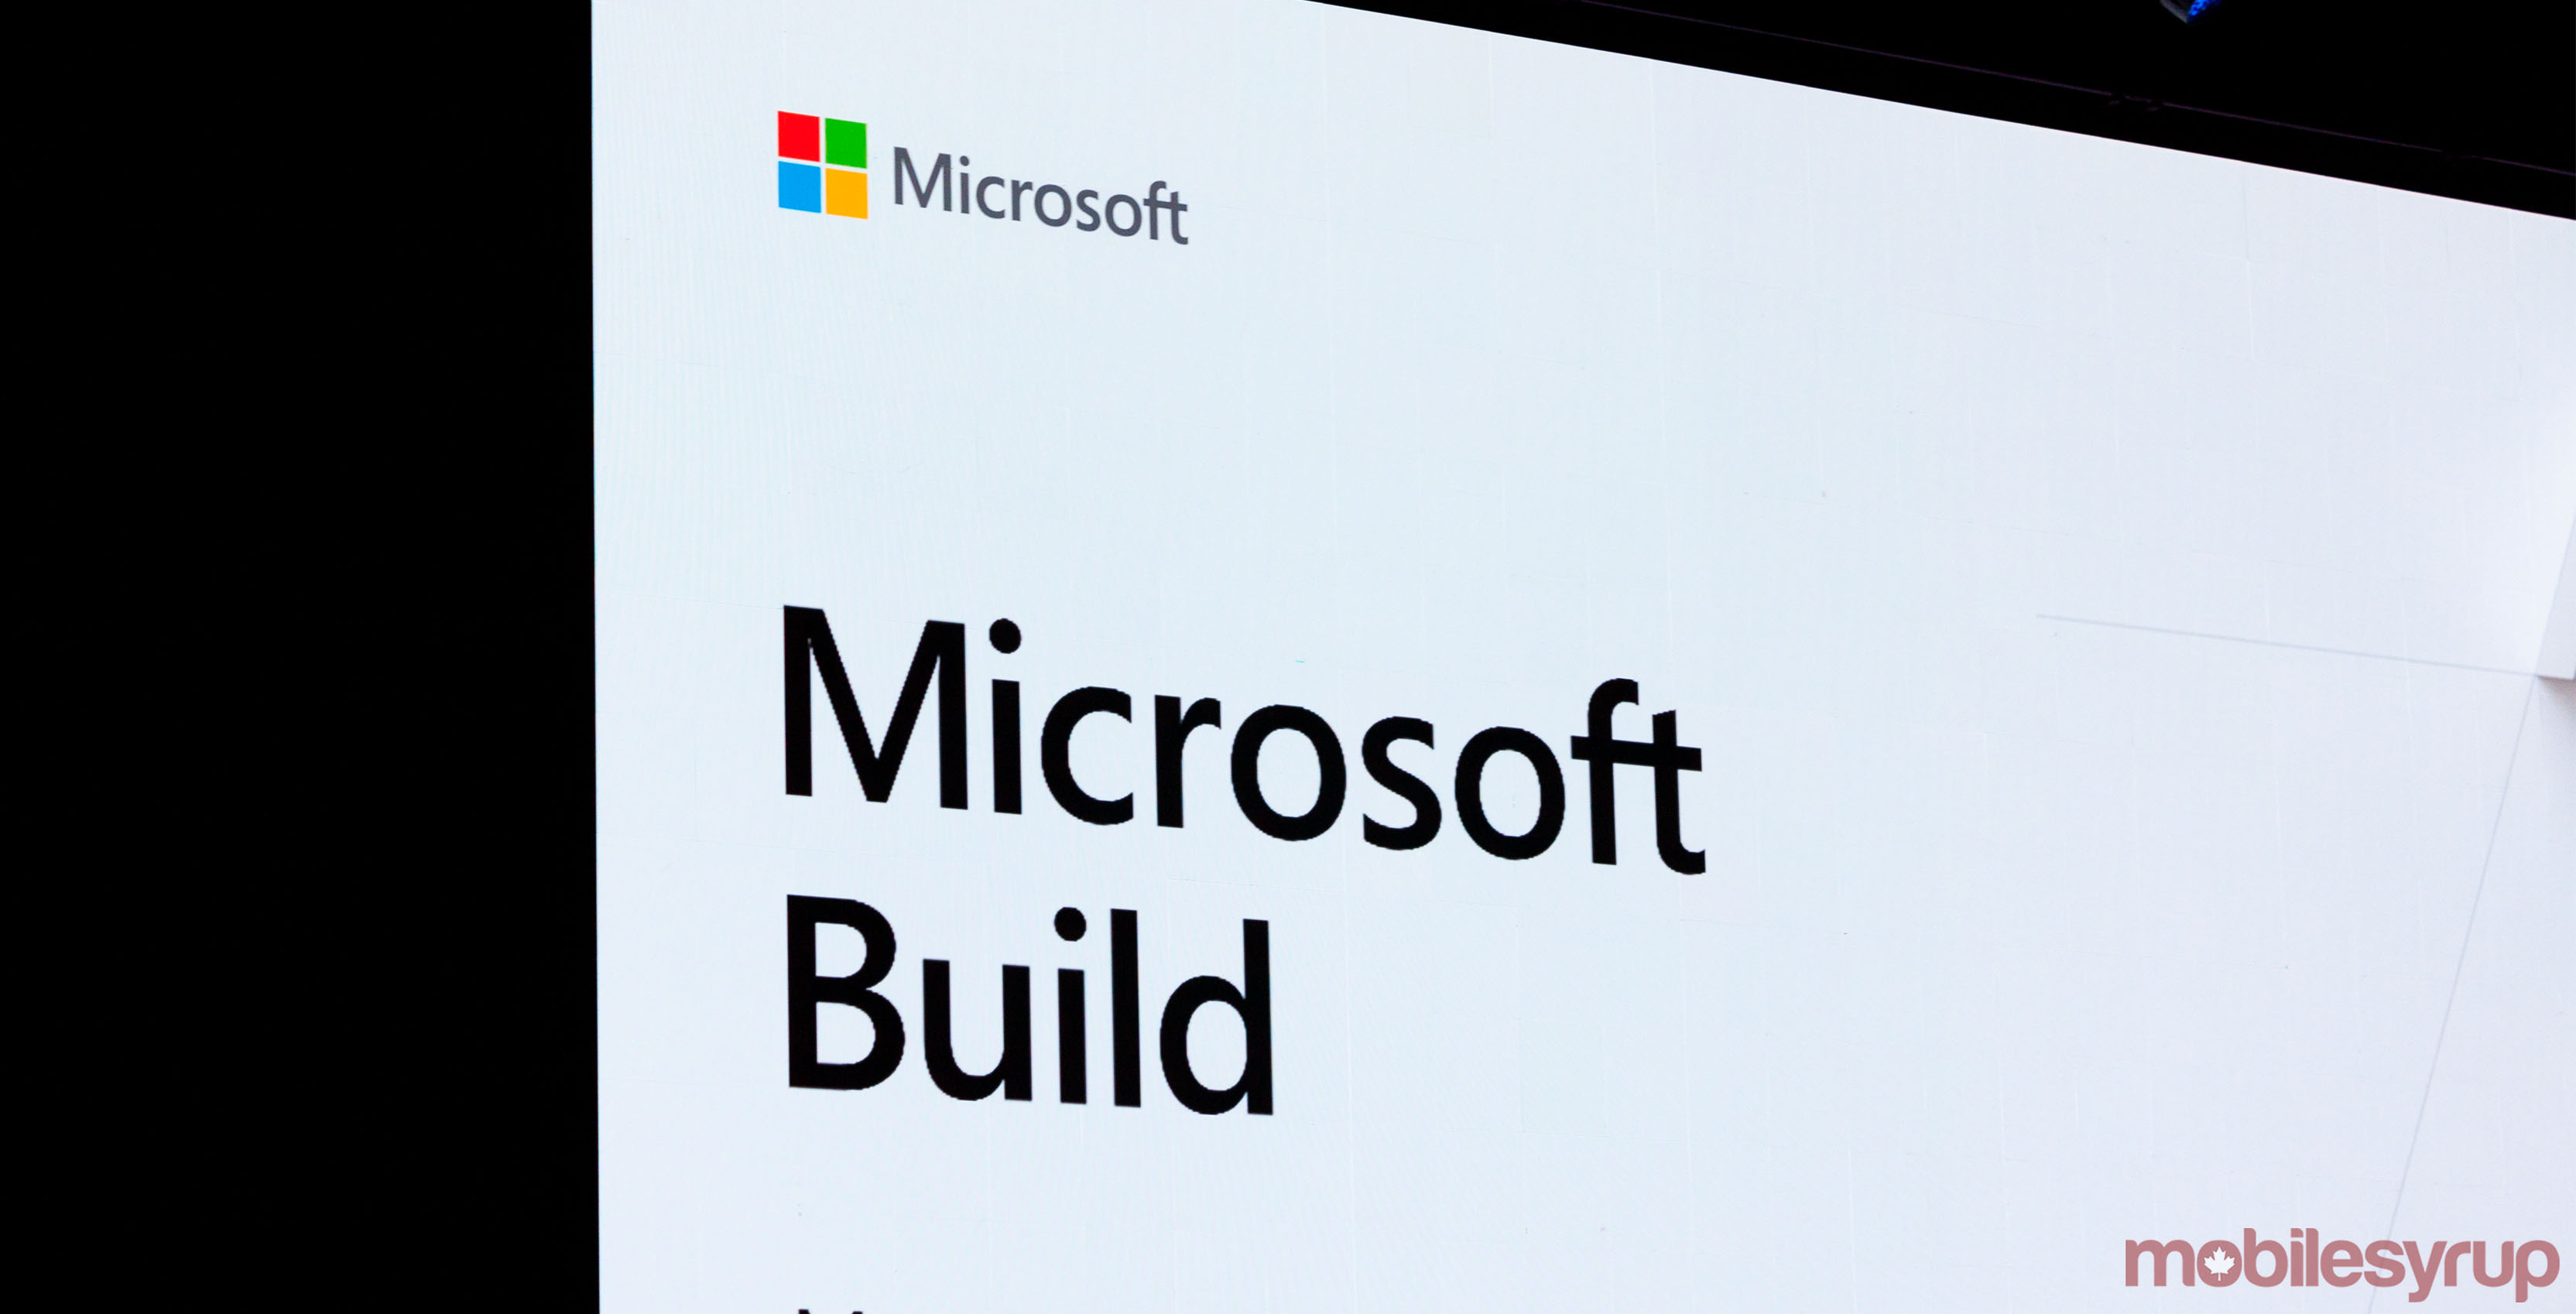 Microsoft unveils new Fluid Framework, Edge improvements, more at Build 2019